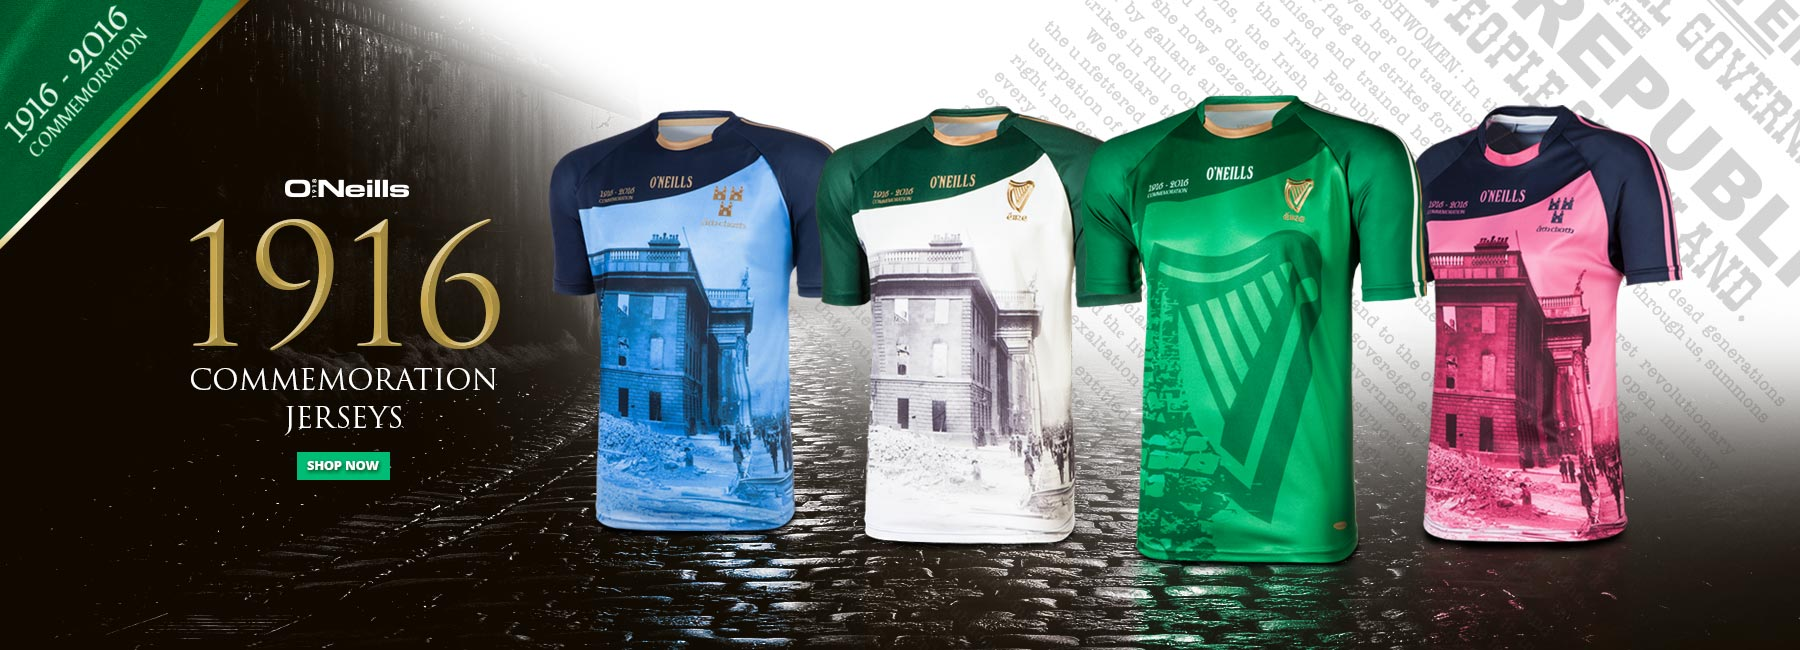 1916 Commemoration Jerseys